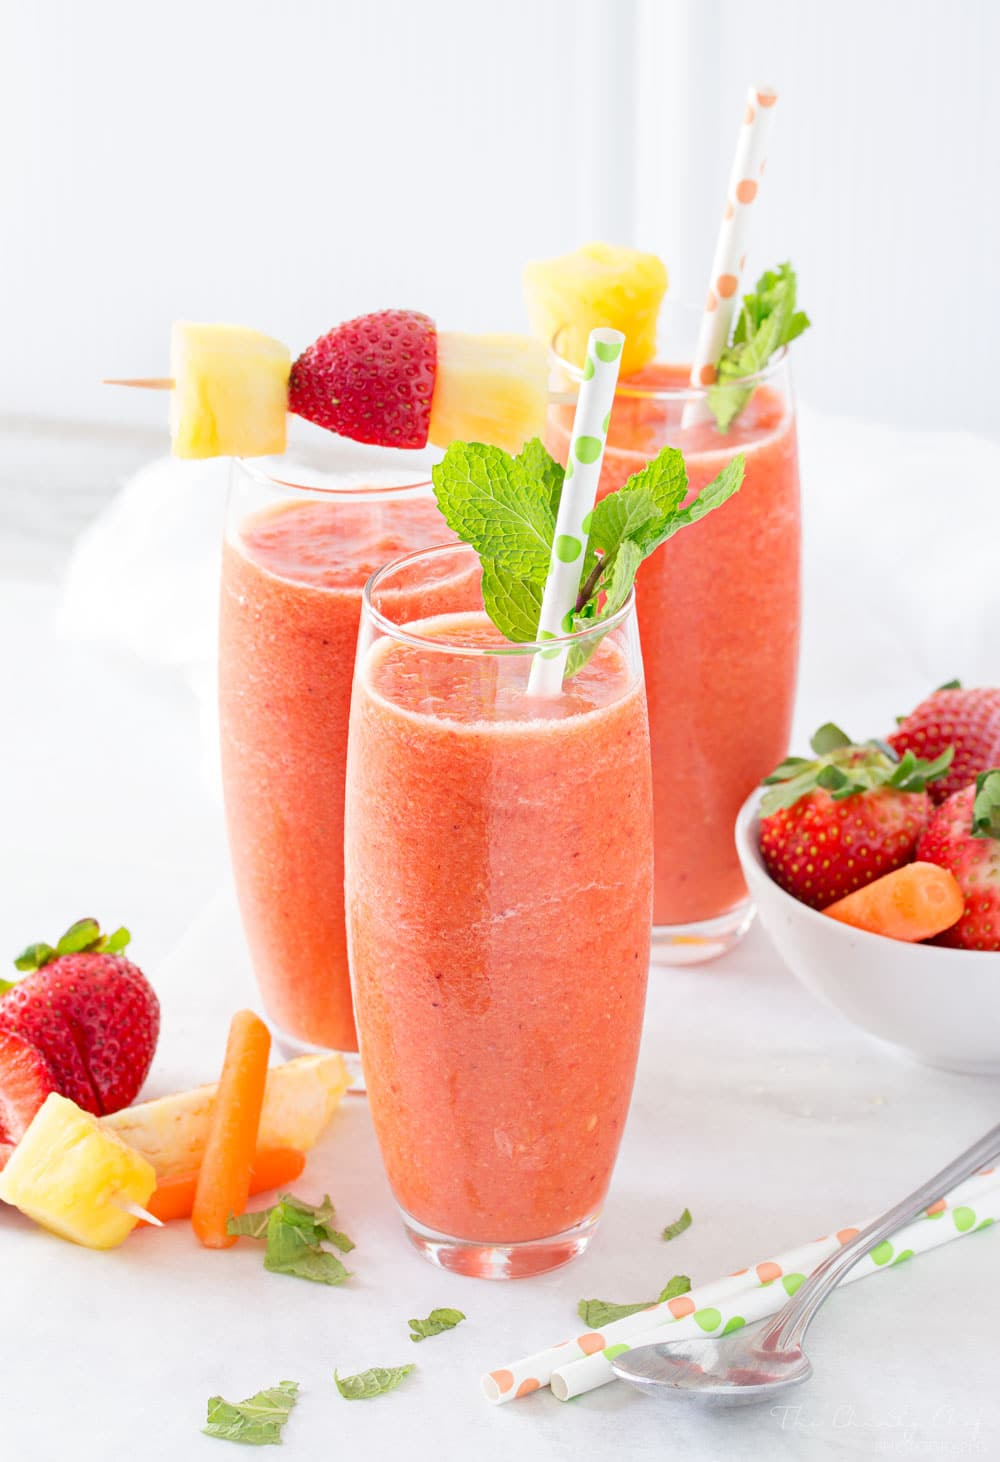 Tropical Carrot Smoothie